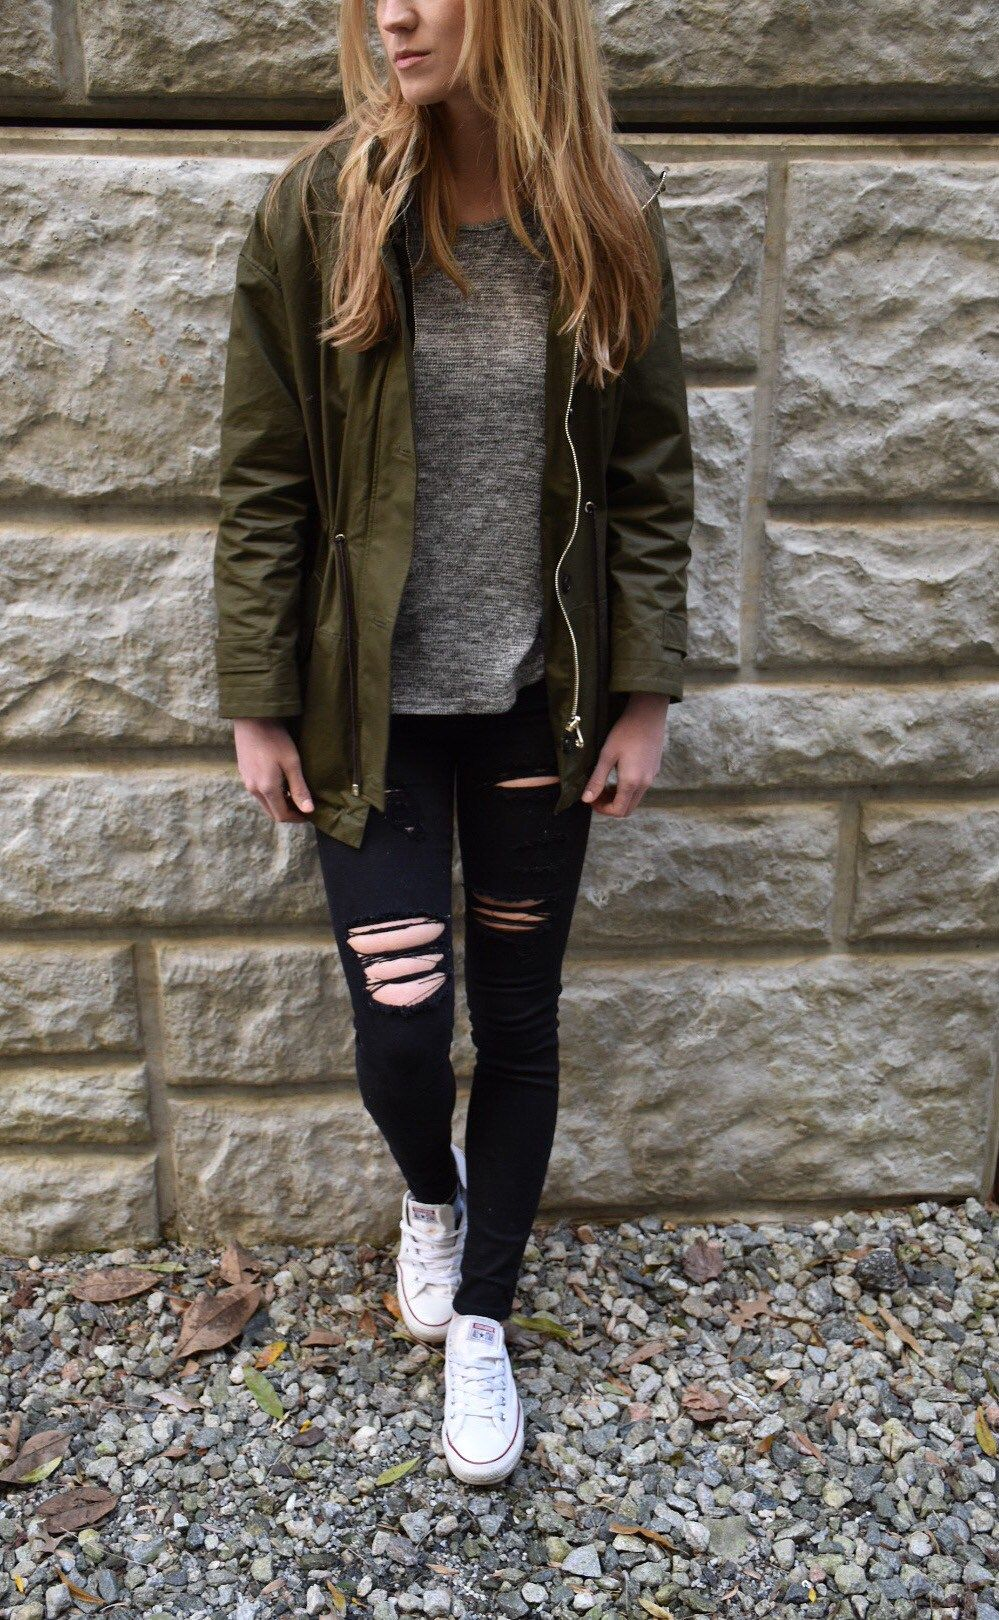 Ripped Jeans | Black ripped jeans outfit, Ripped jeans